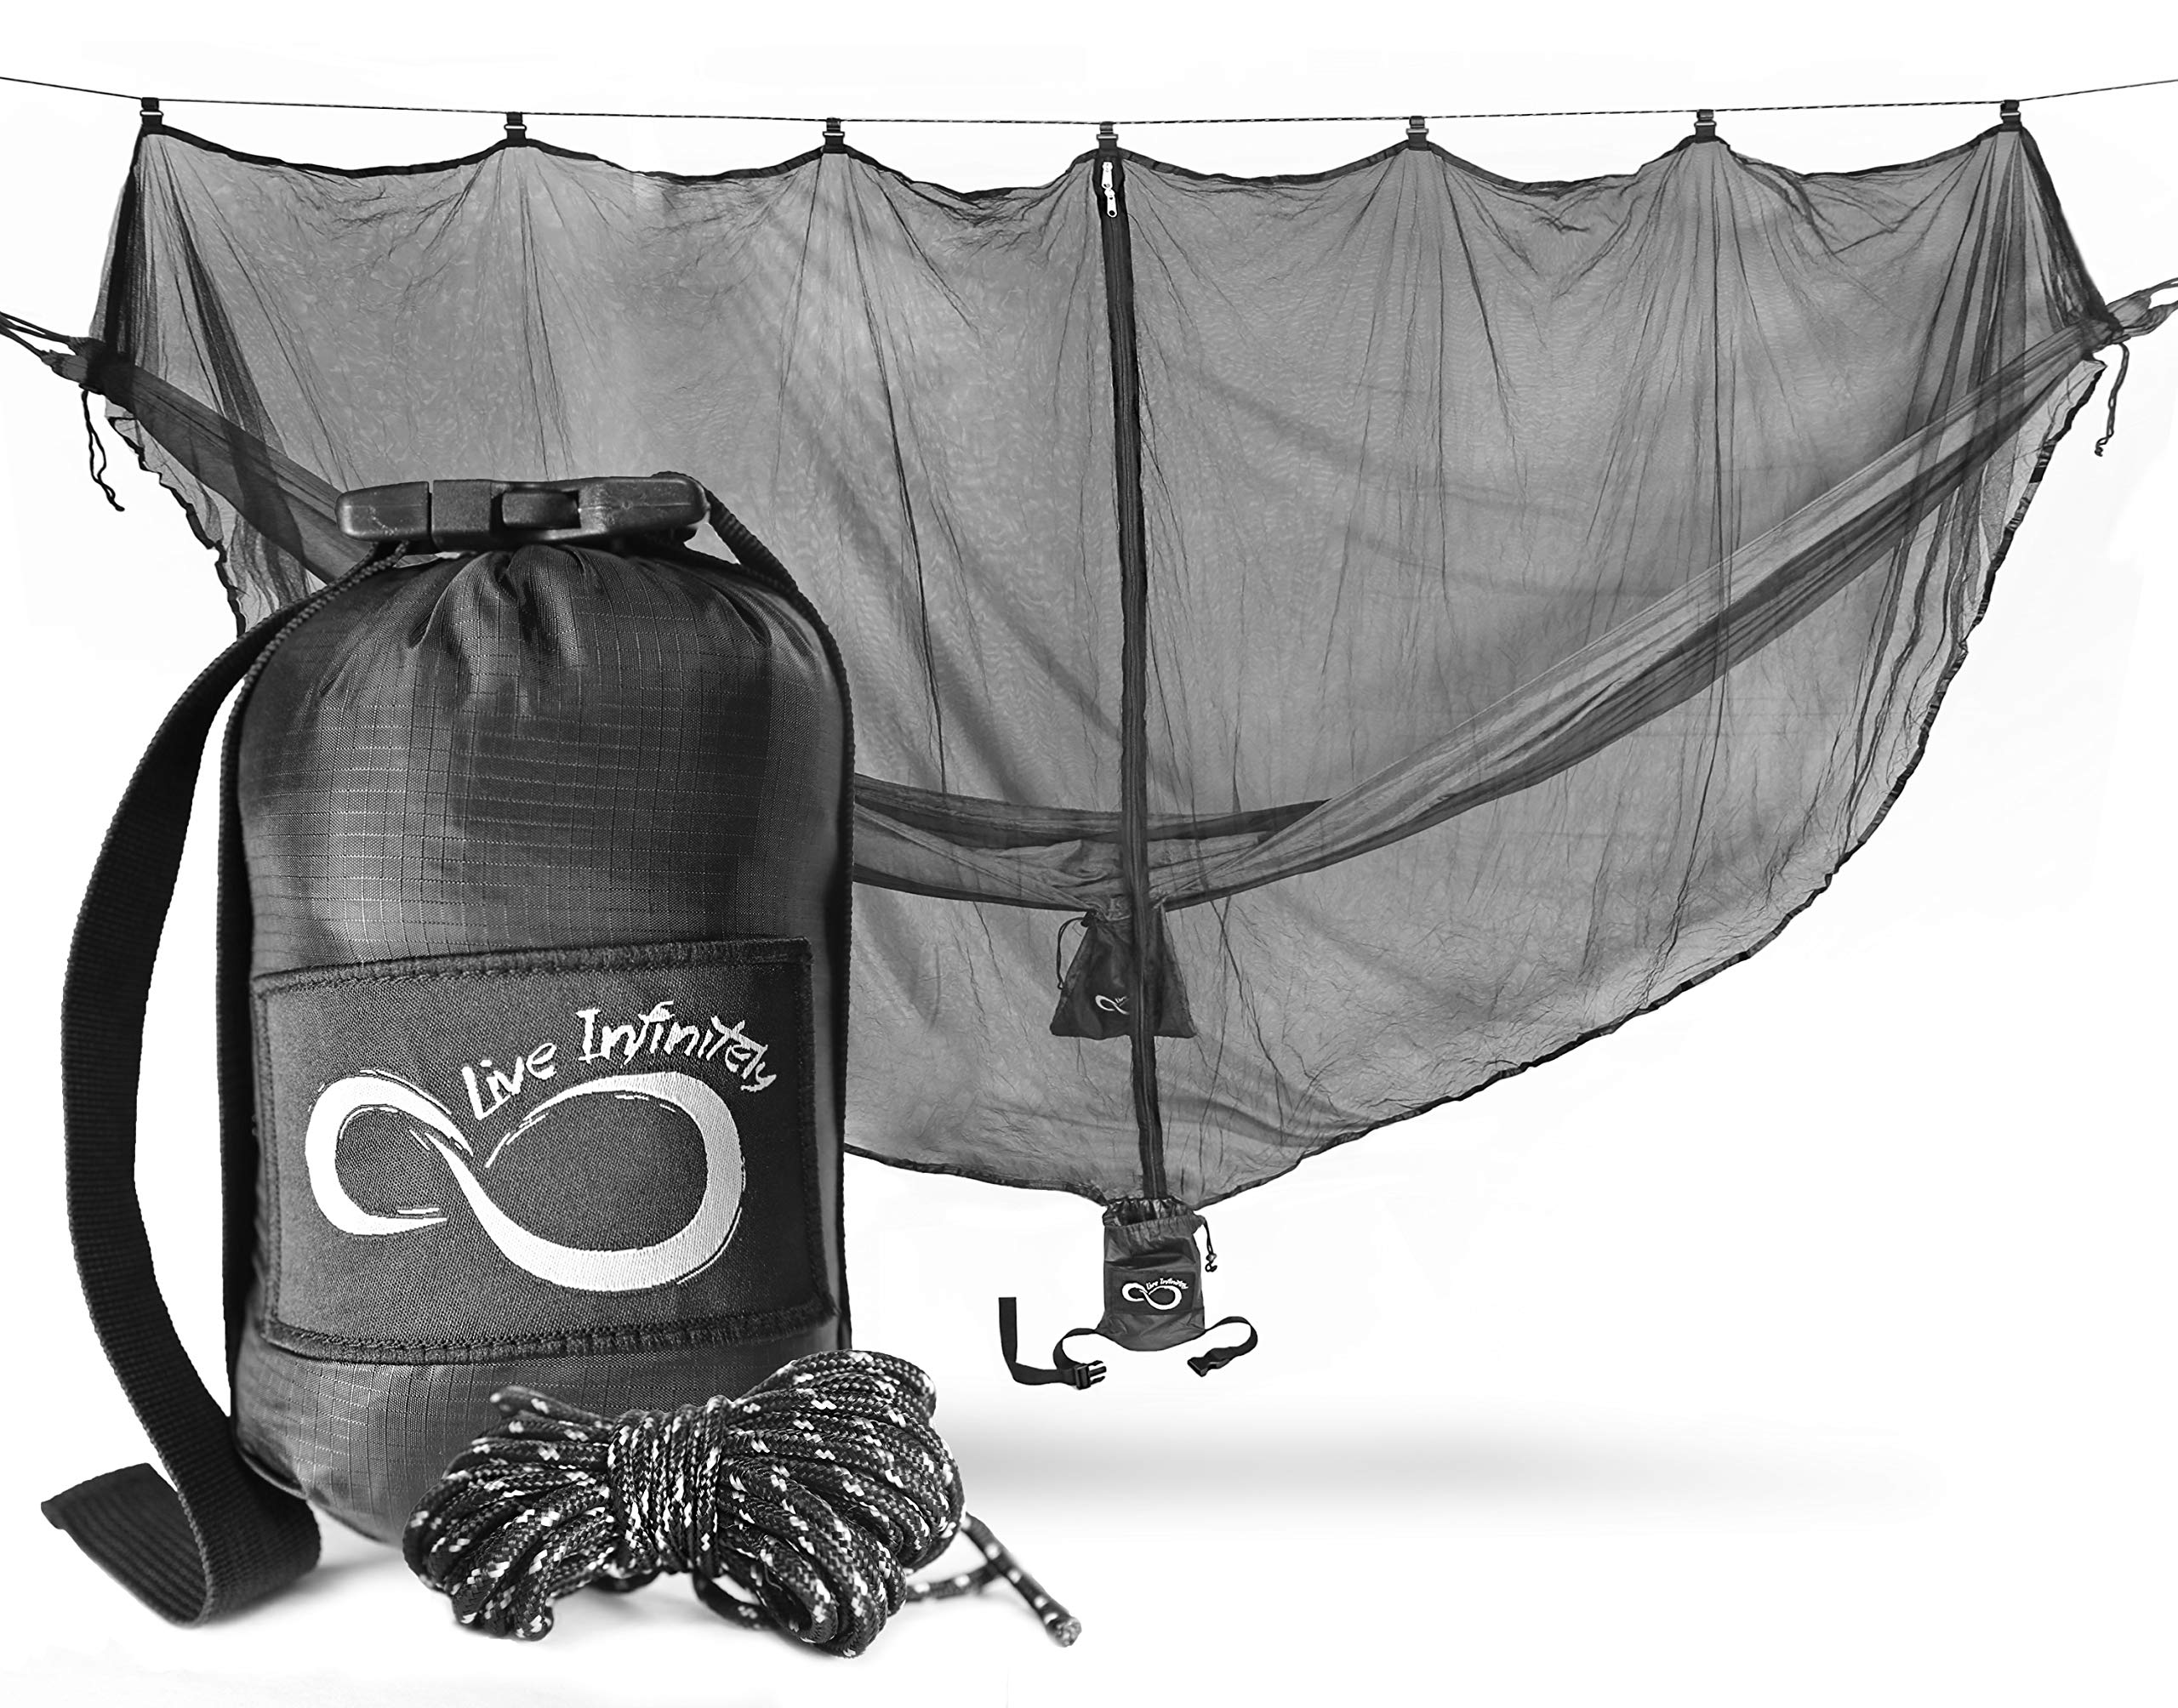 Live Infinitely Hammock Mosquito Net- 11'x 5' - Fits All Single & Double Camping Hammocks -Stop No See Ums, Mosquitos, Spiders & Pesky Bugs -Lightweight Easy Setup & Exclusive XL Compression Pouch by Live Infinitely